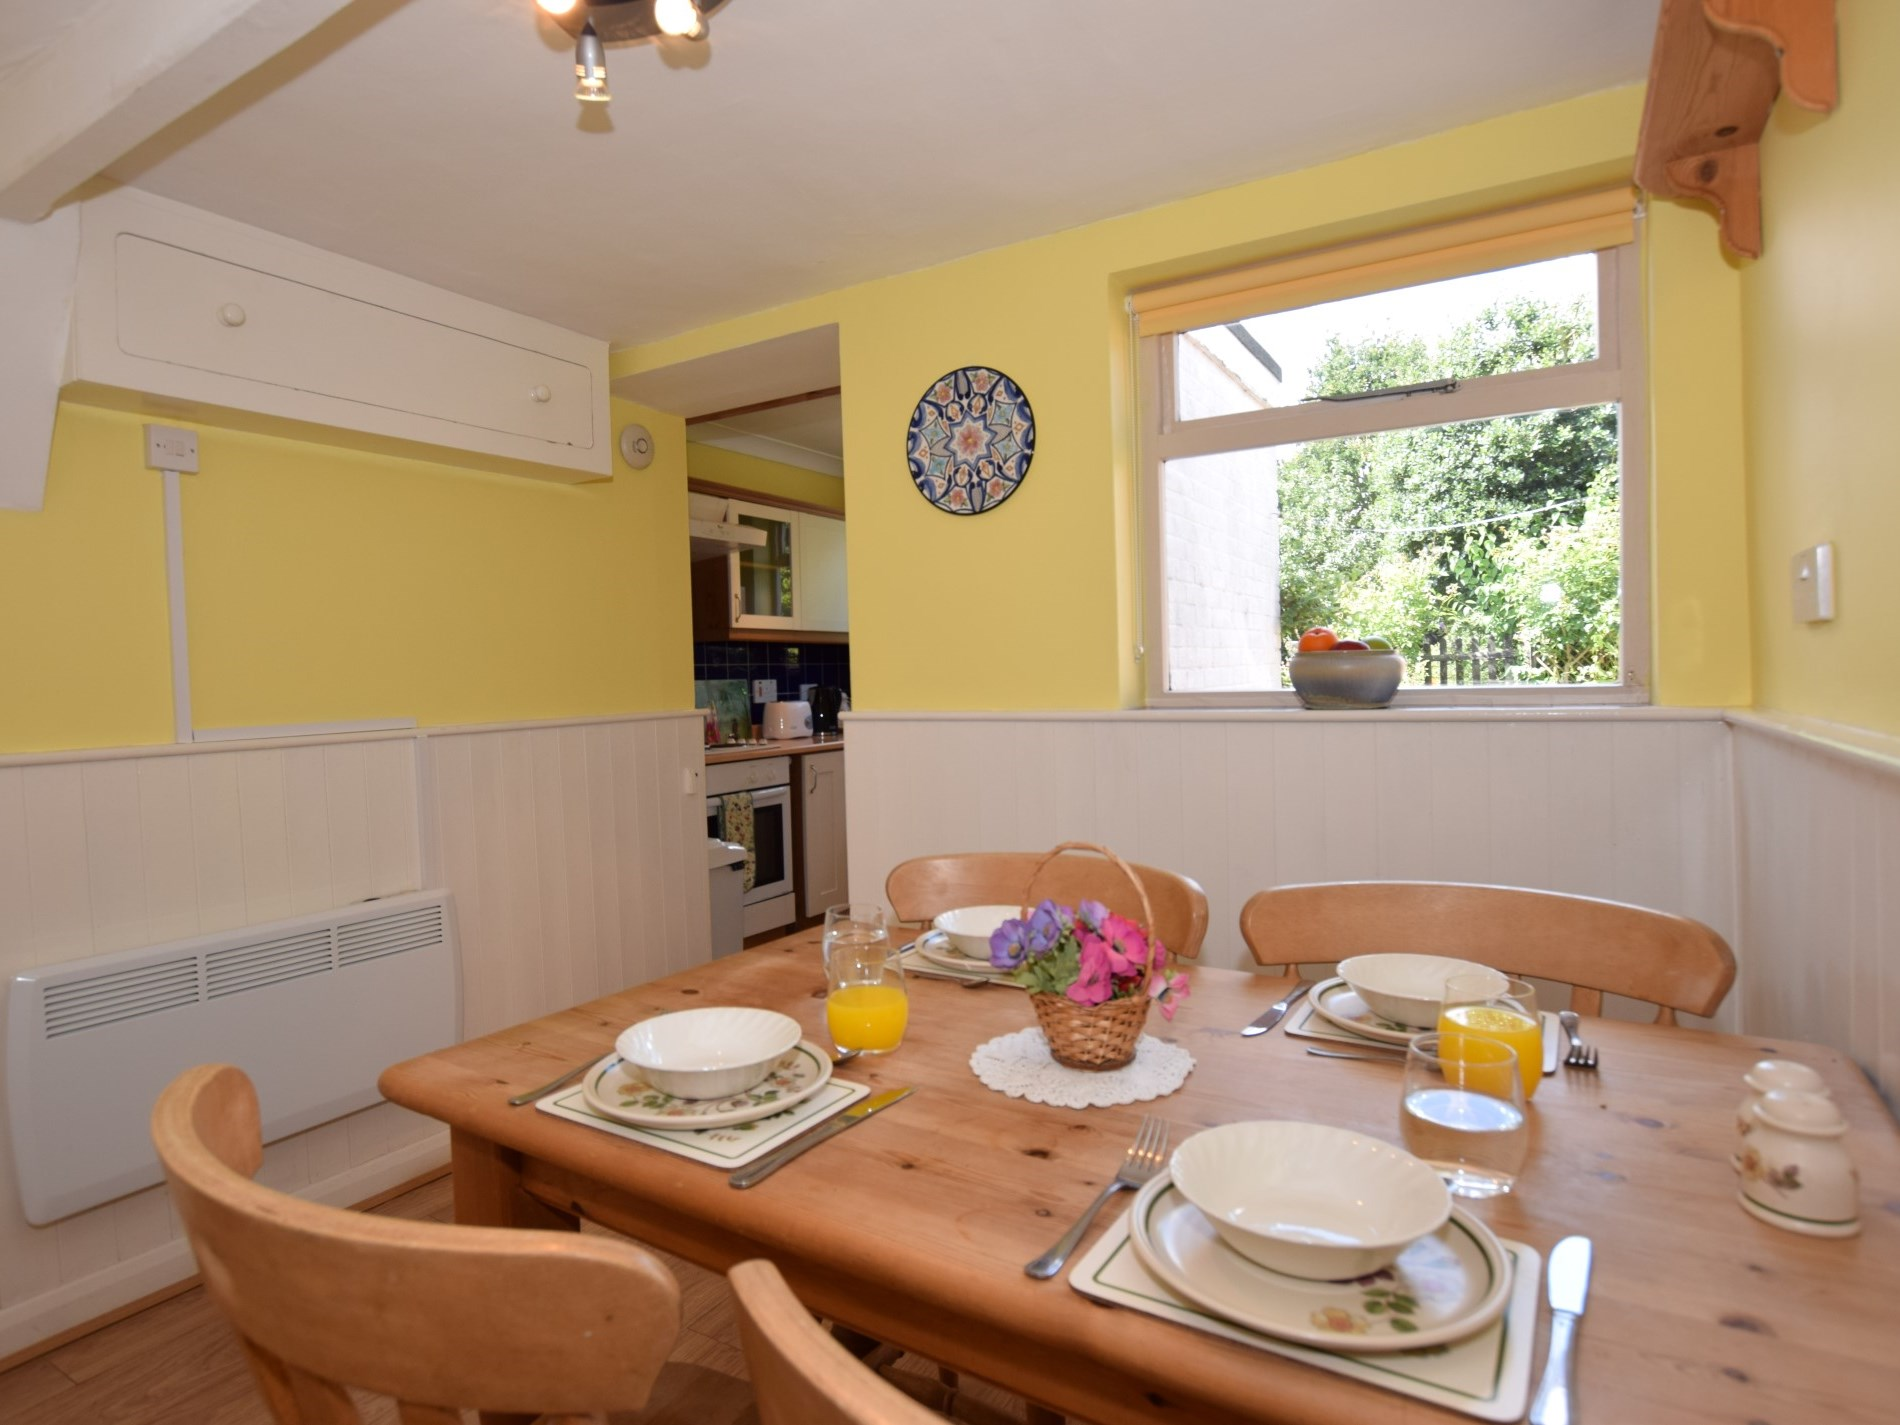 2 Bedroom Cottage in Saxmundham, East Anglia